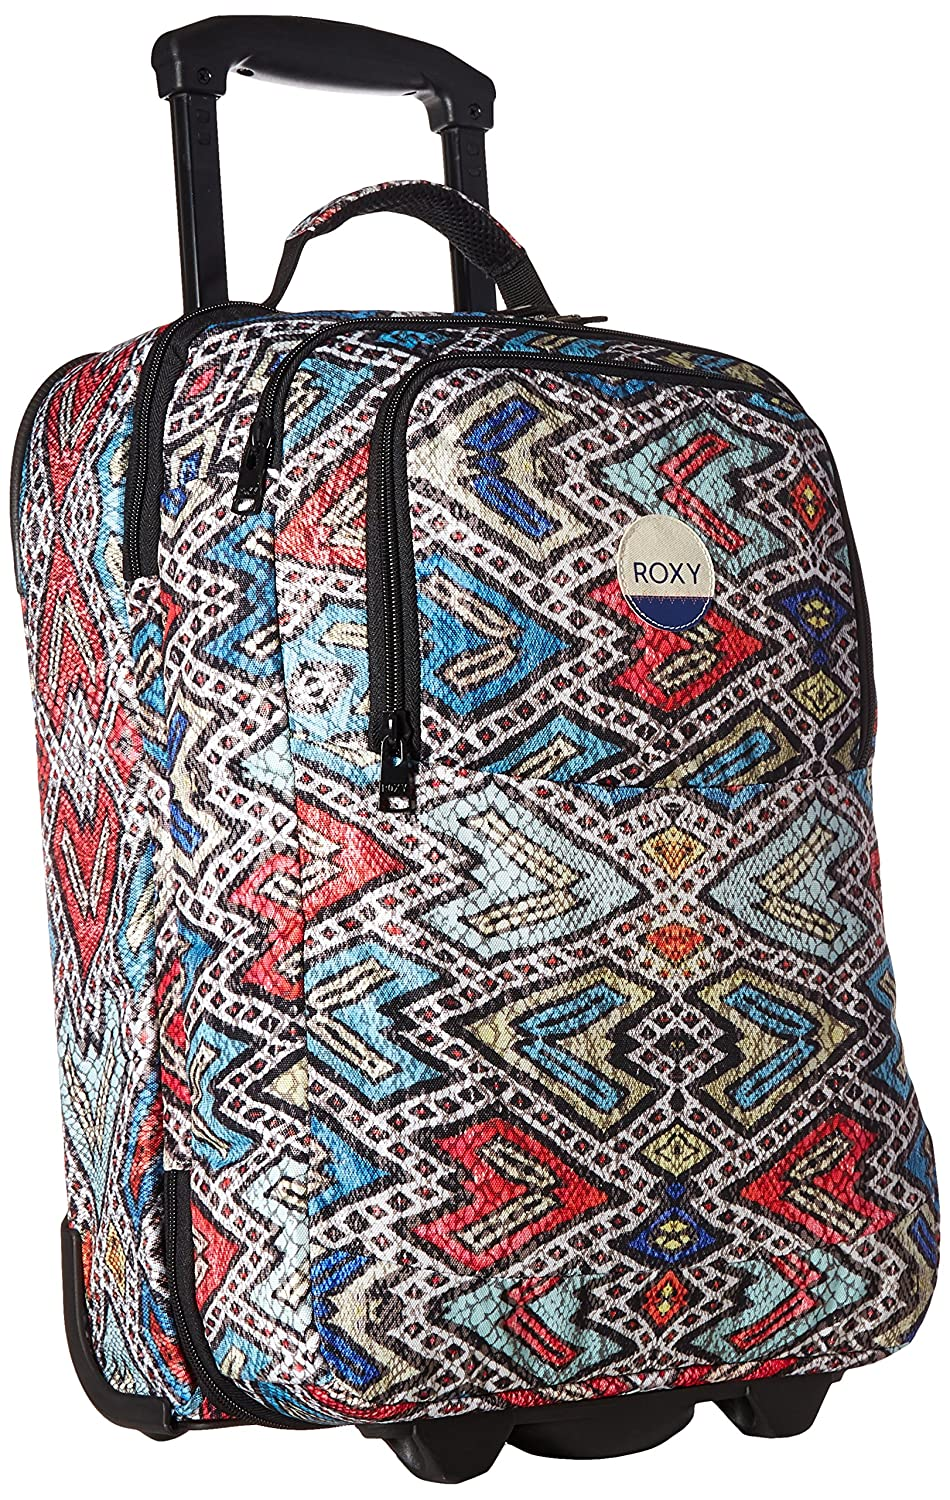 5290fd4c227e Amazon.com: Roxy Women's Wheelie Carry-on Suitcase Regatta Soaring ...